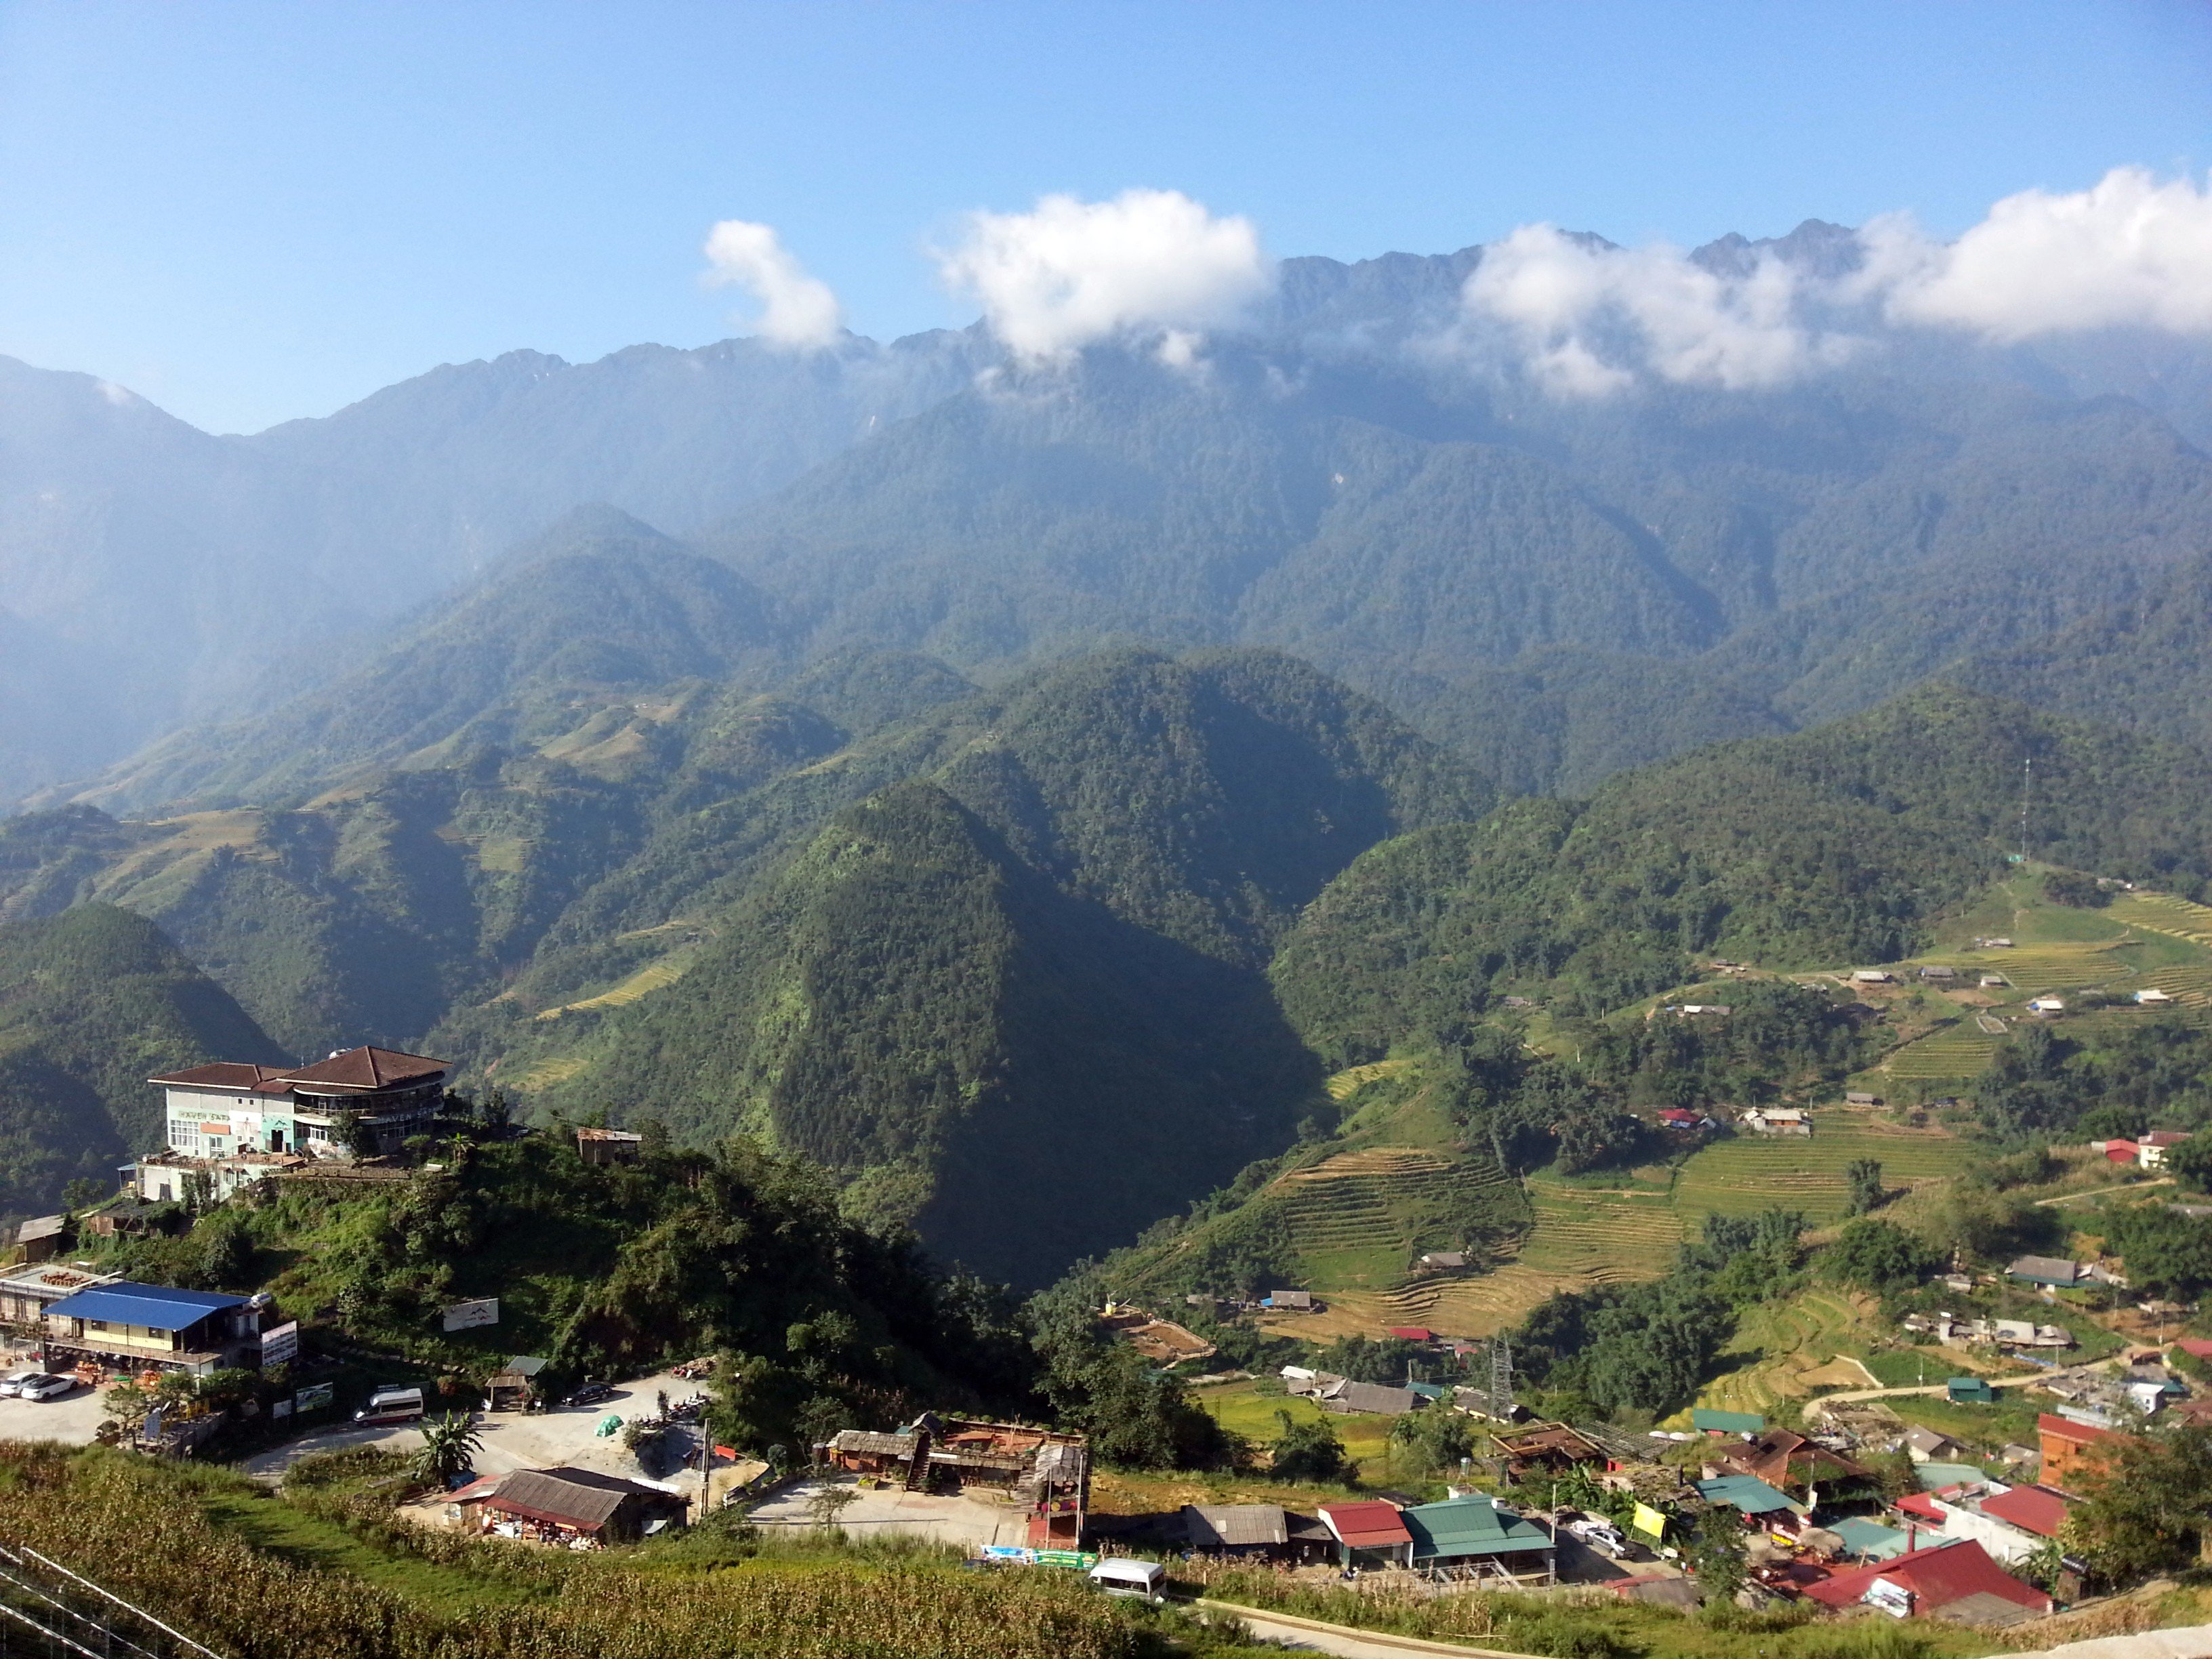 The view on the way to start the walk to Cat Cat Village